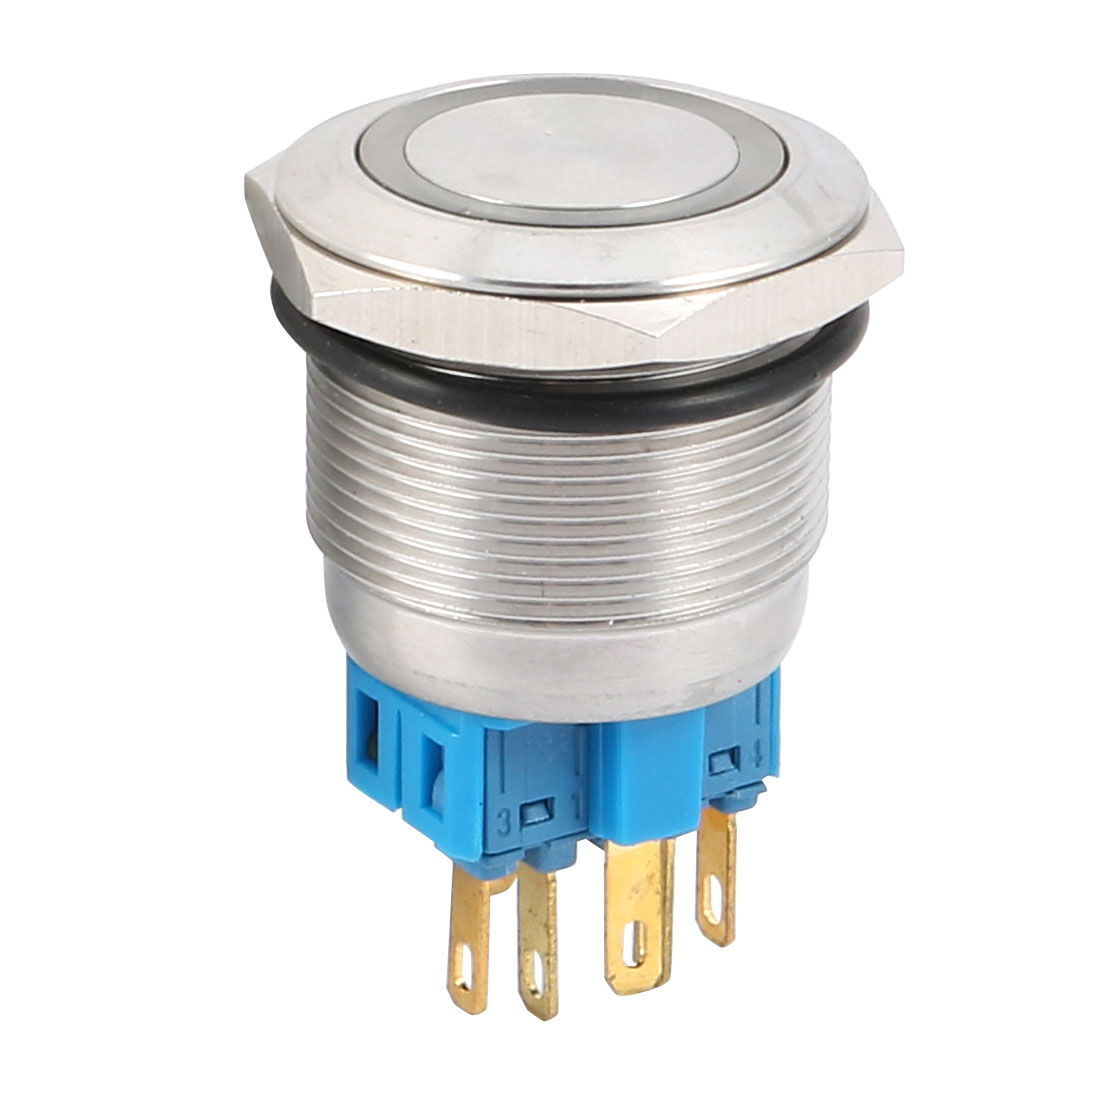 DC 12V 20mm Blue LED Light 25mm Mounted Thread 6 Pins DPST NO/NC Latching Push Button Switch